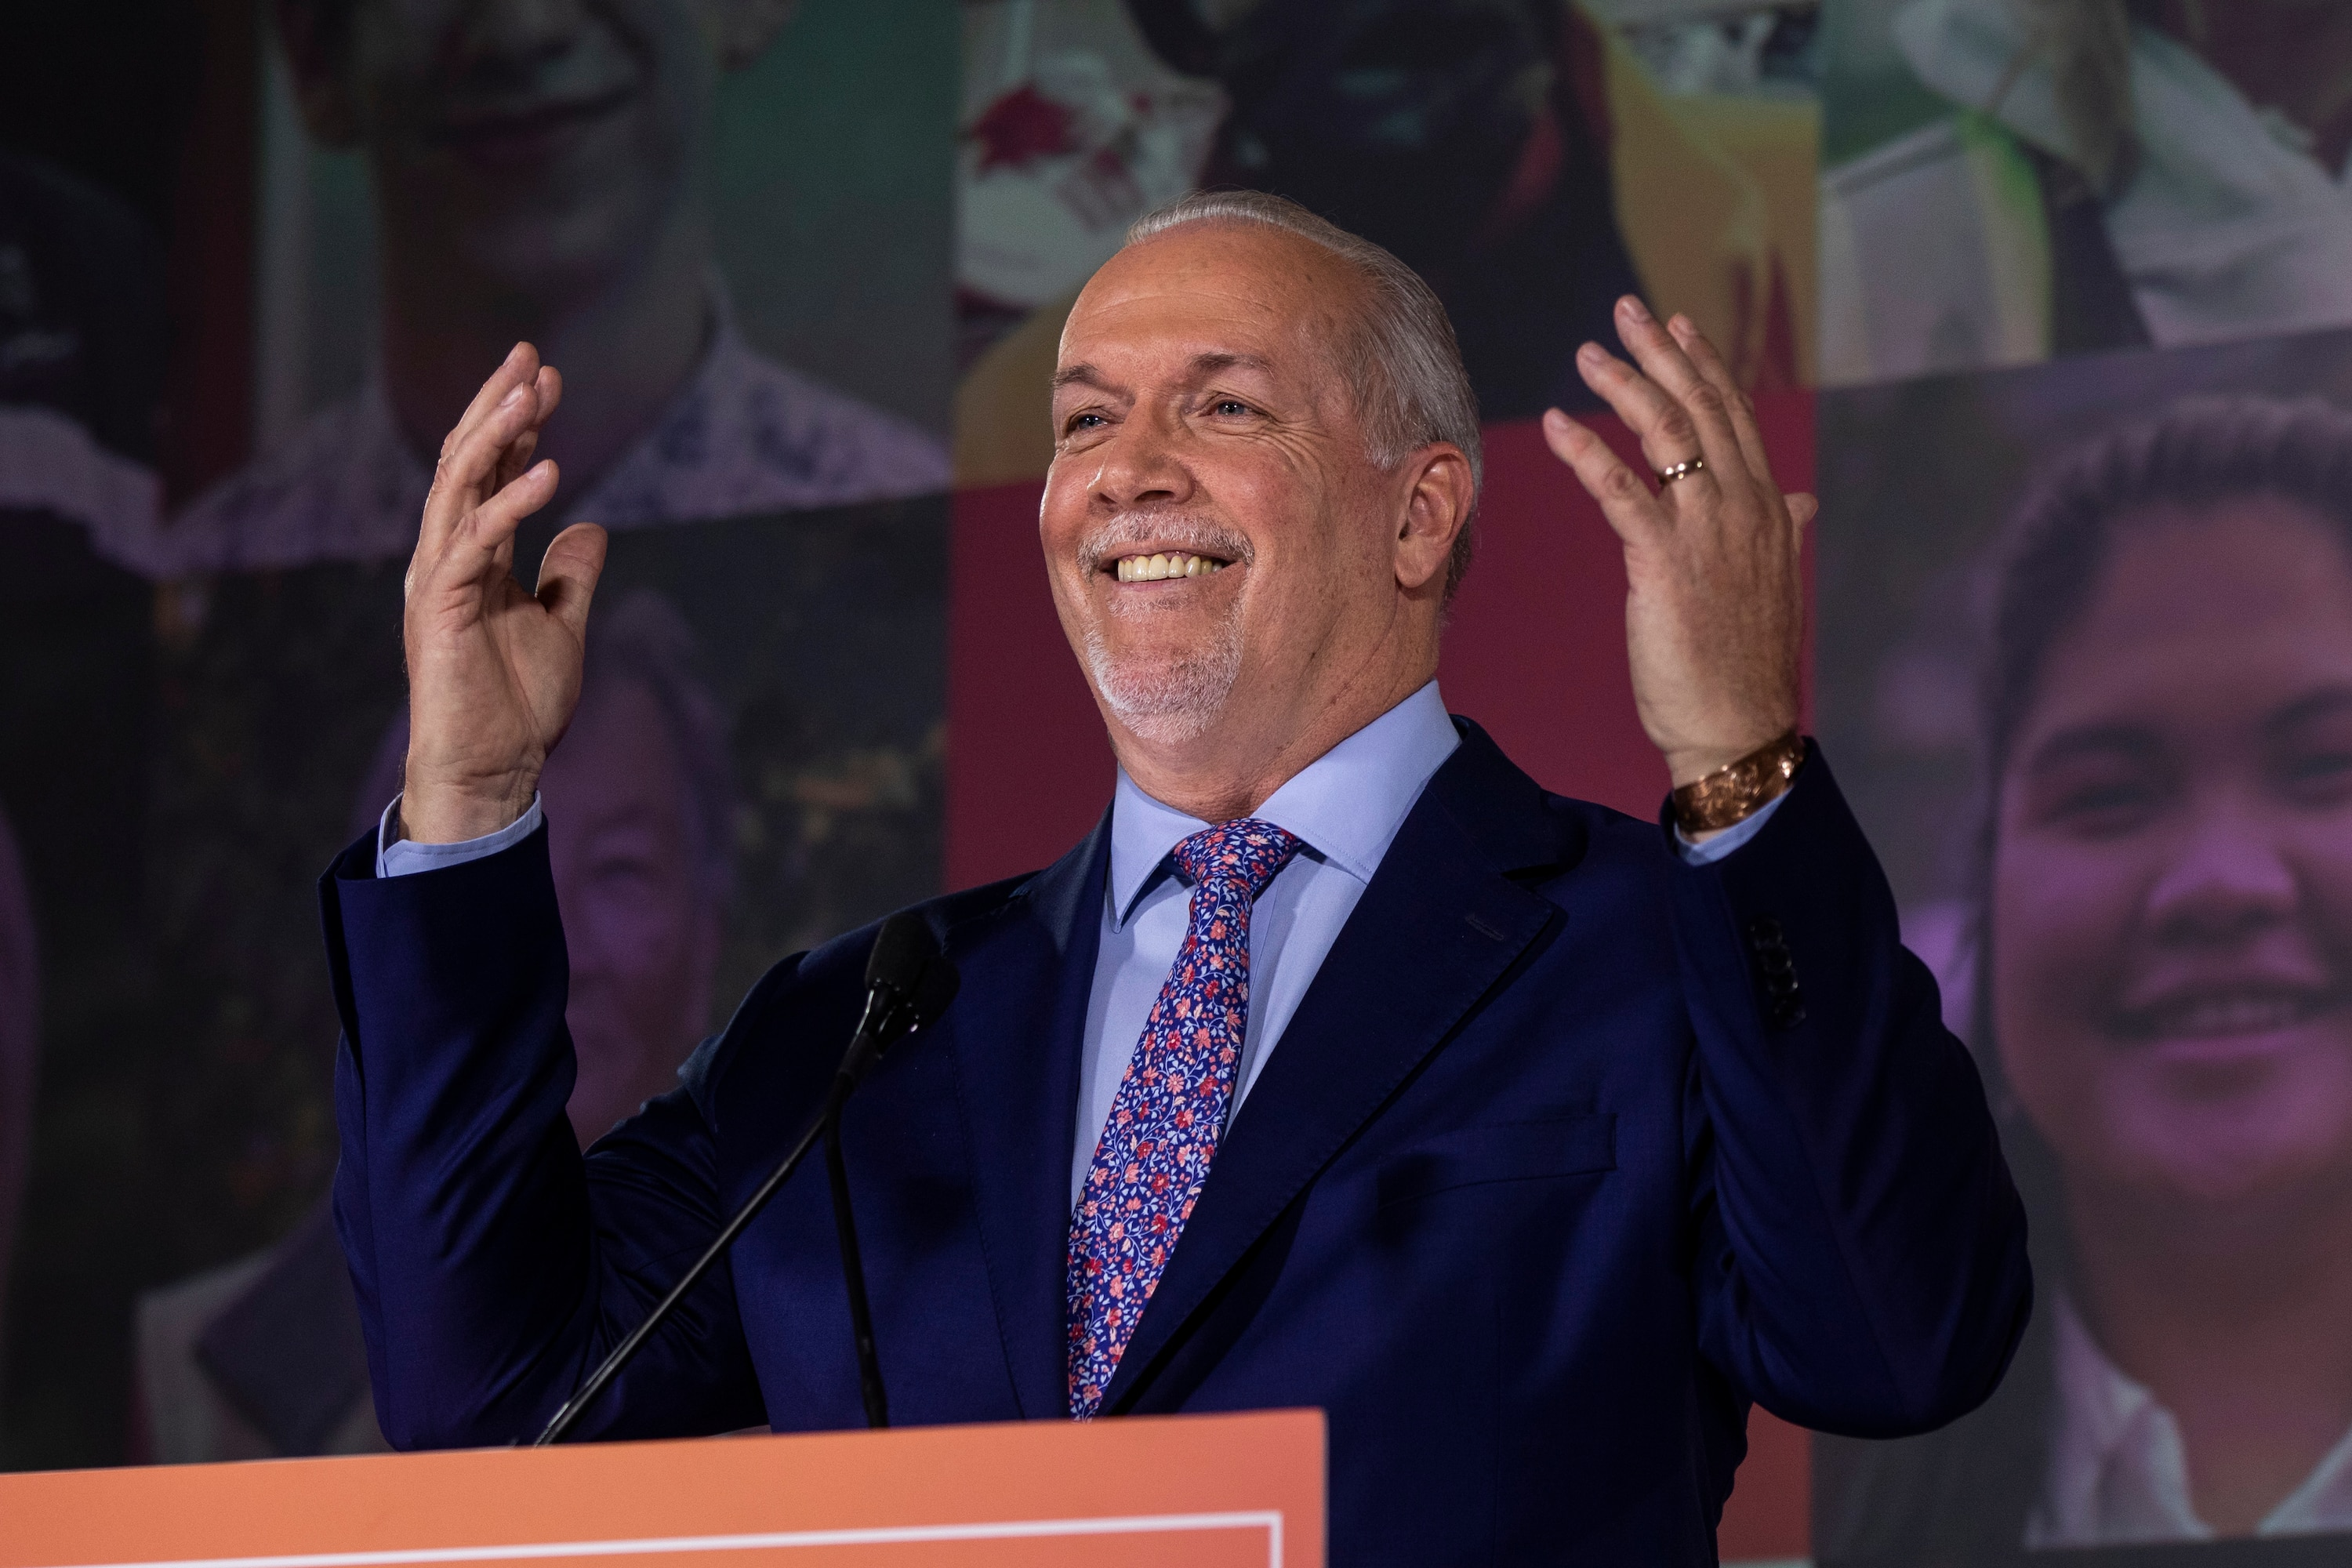 10 reasons the B.C. NDP had its most Prosperous election  thumbnail